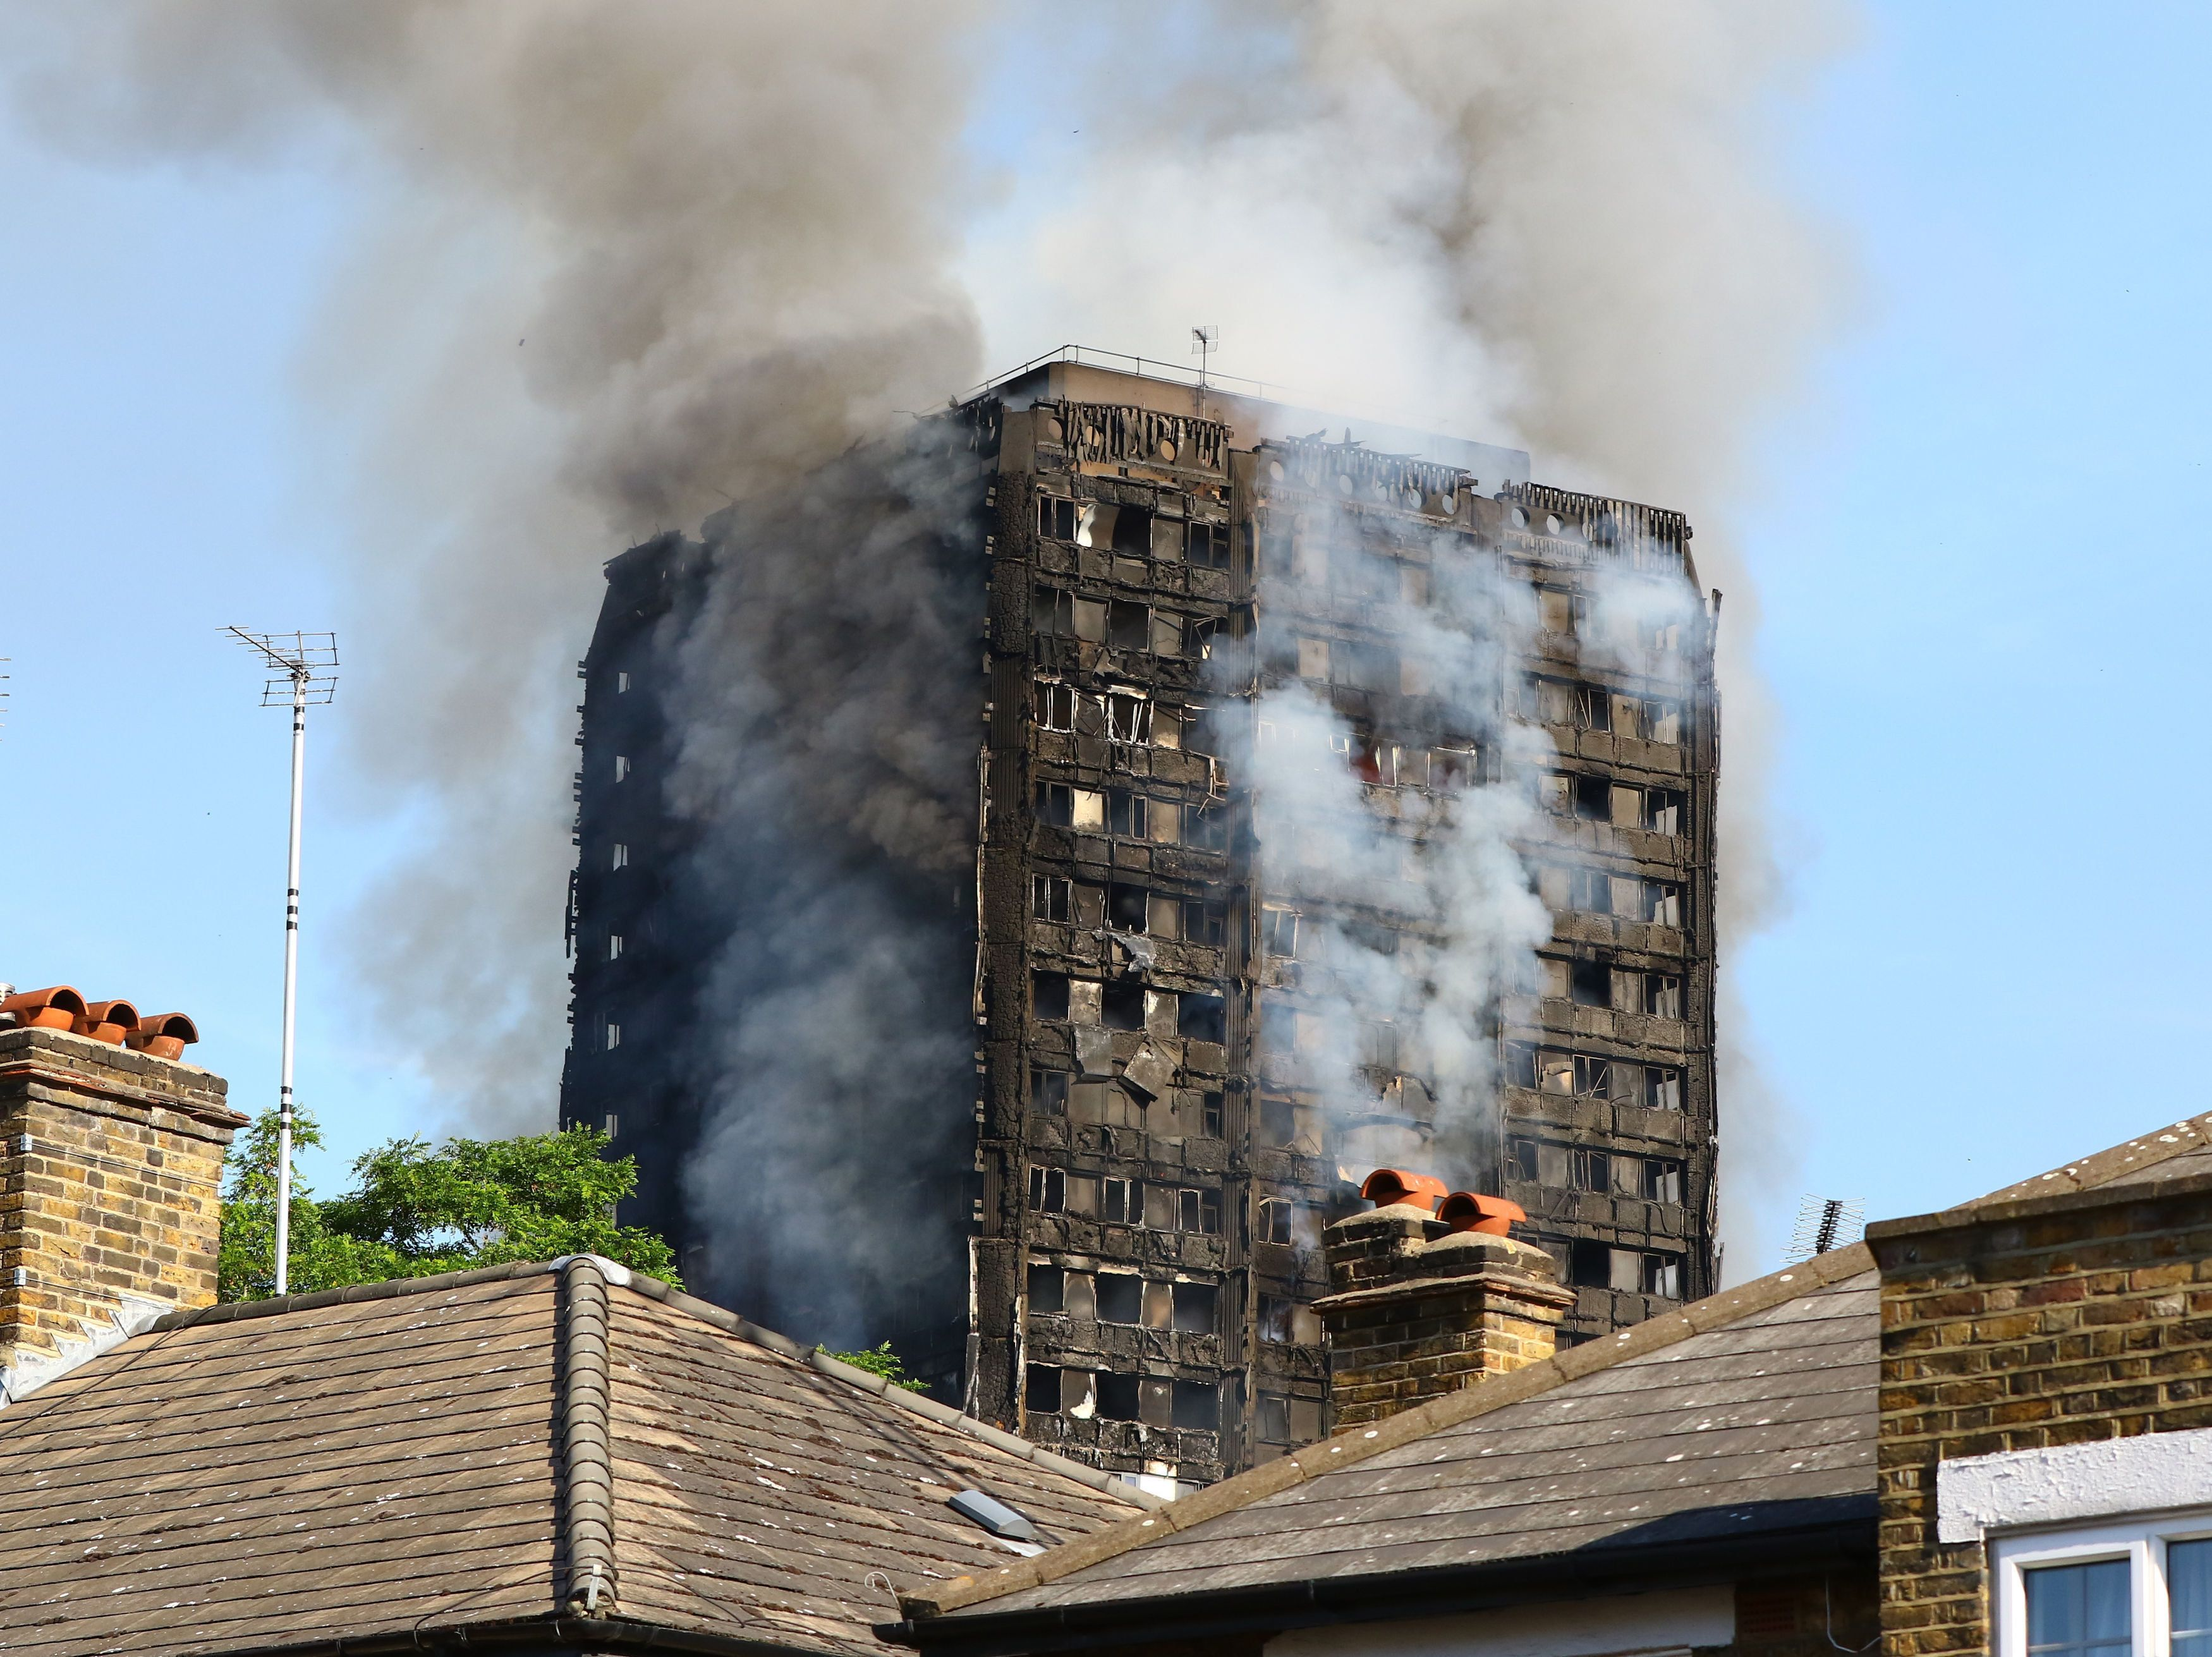 Grenfell Campaigners Fear Others Could Be Living Behind Doors That Failed 30 Minute